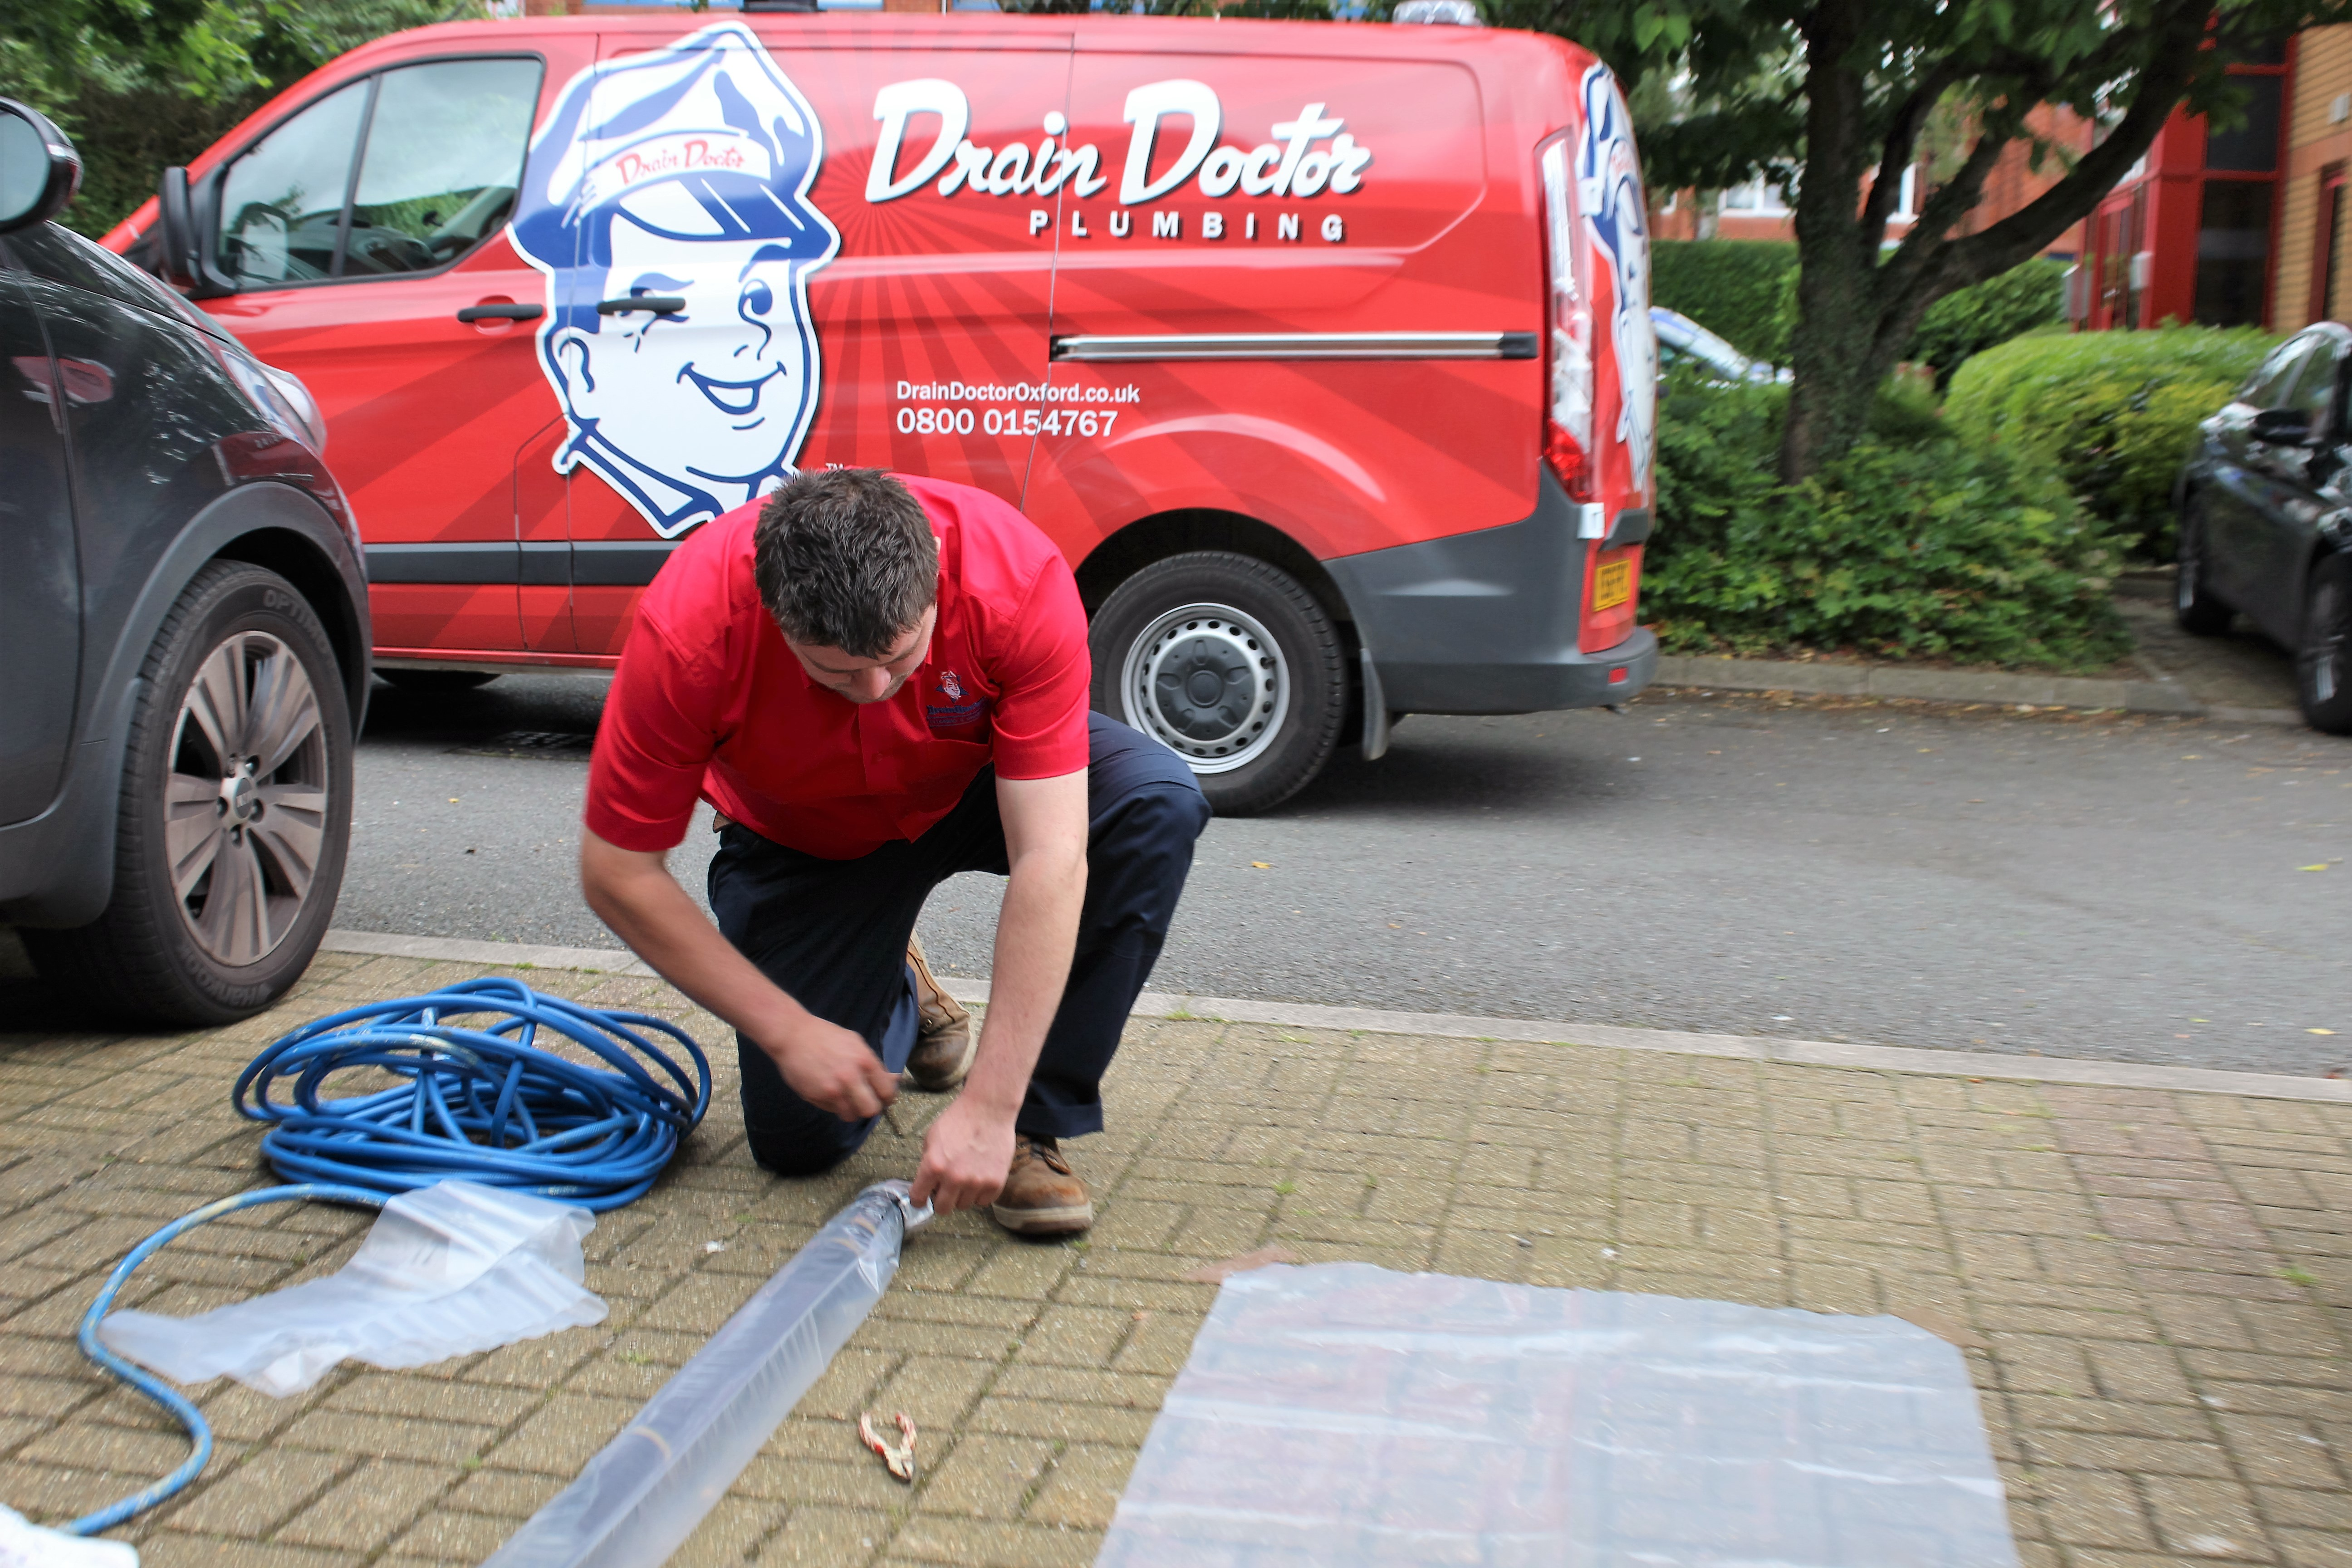 Franchisee Drain Doctor